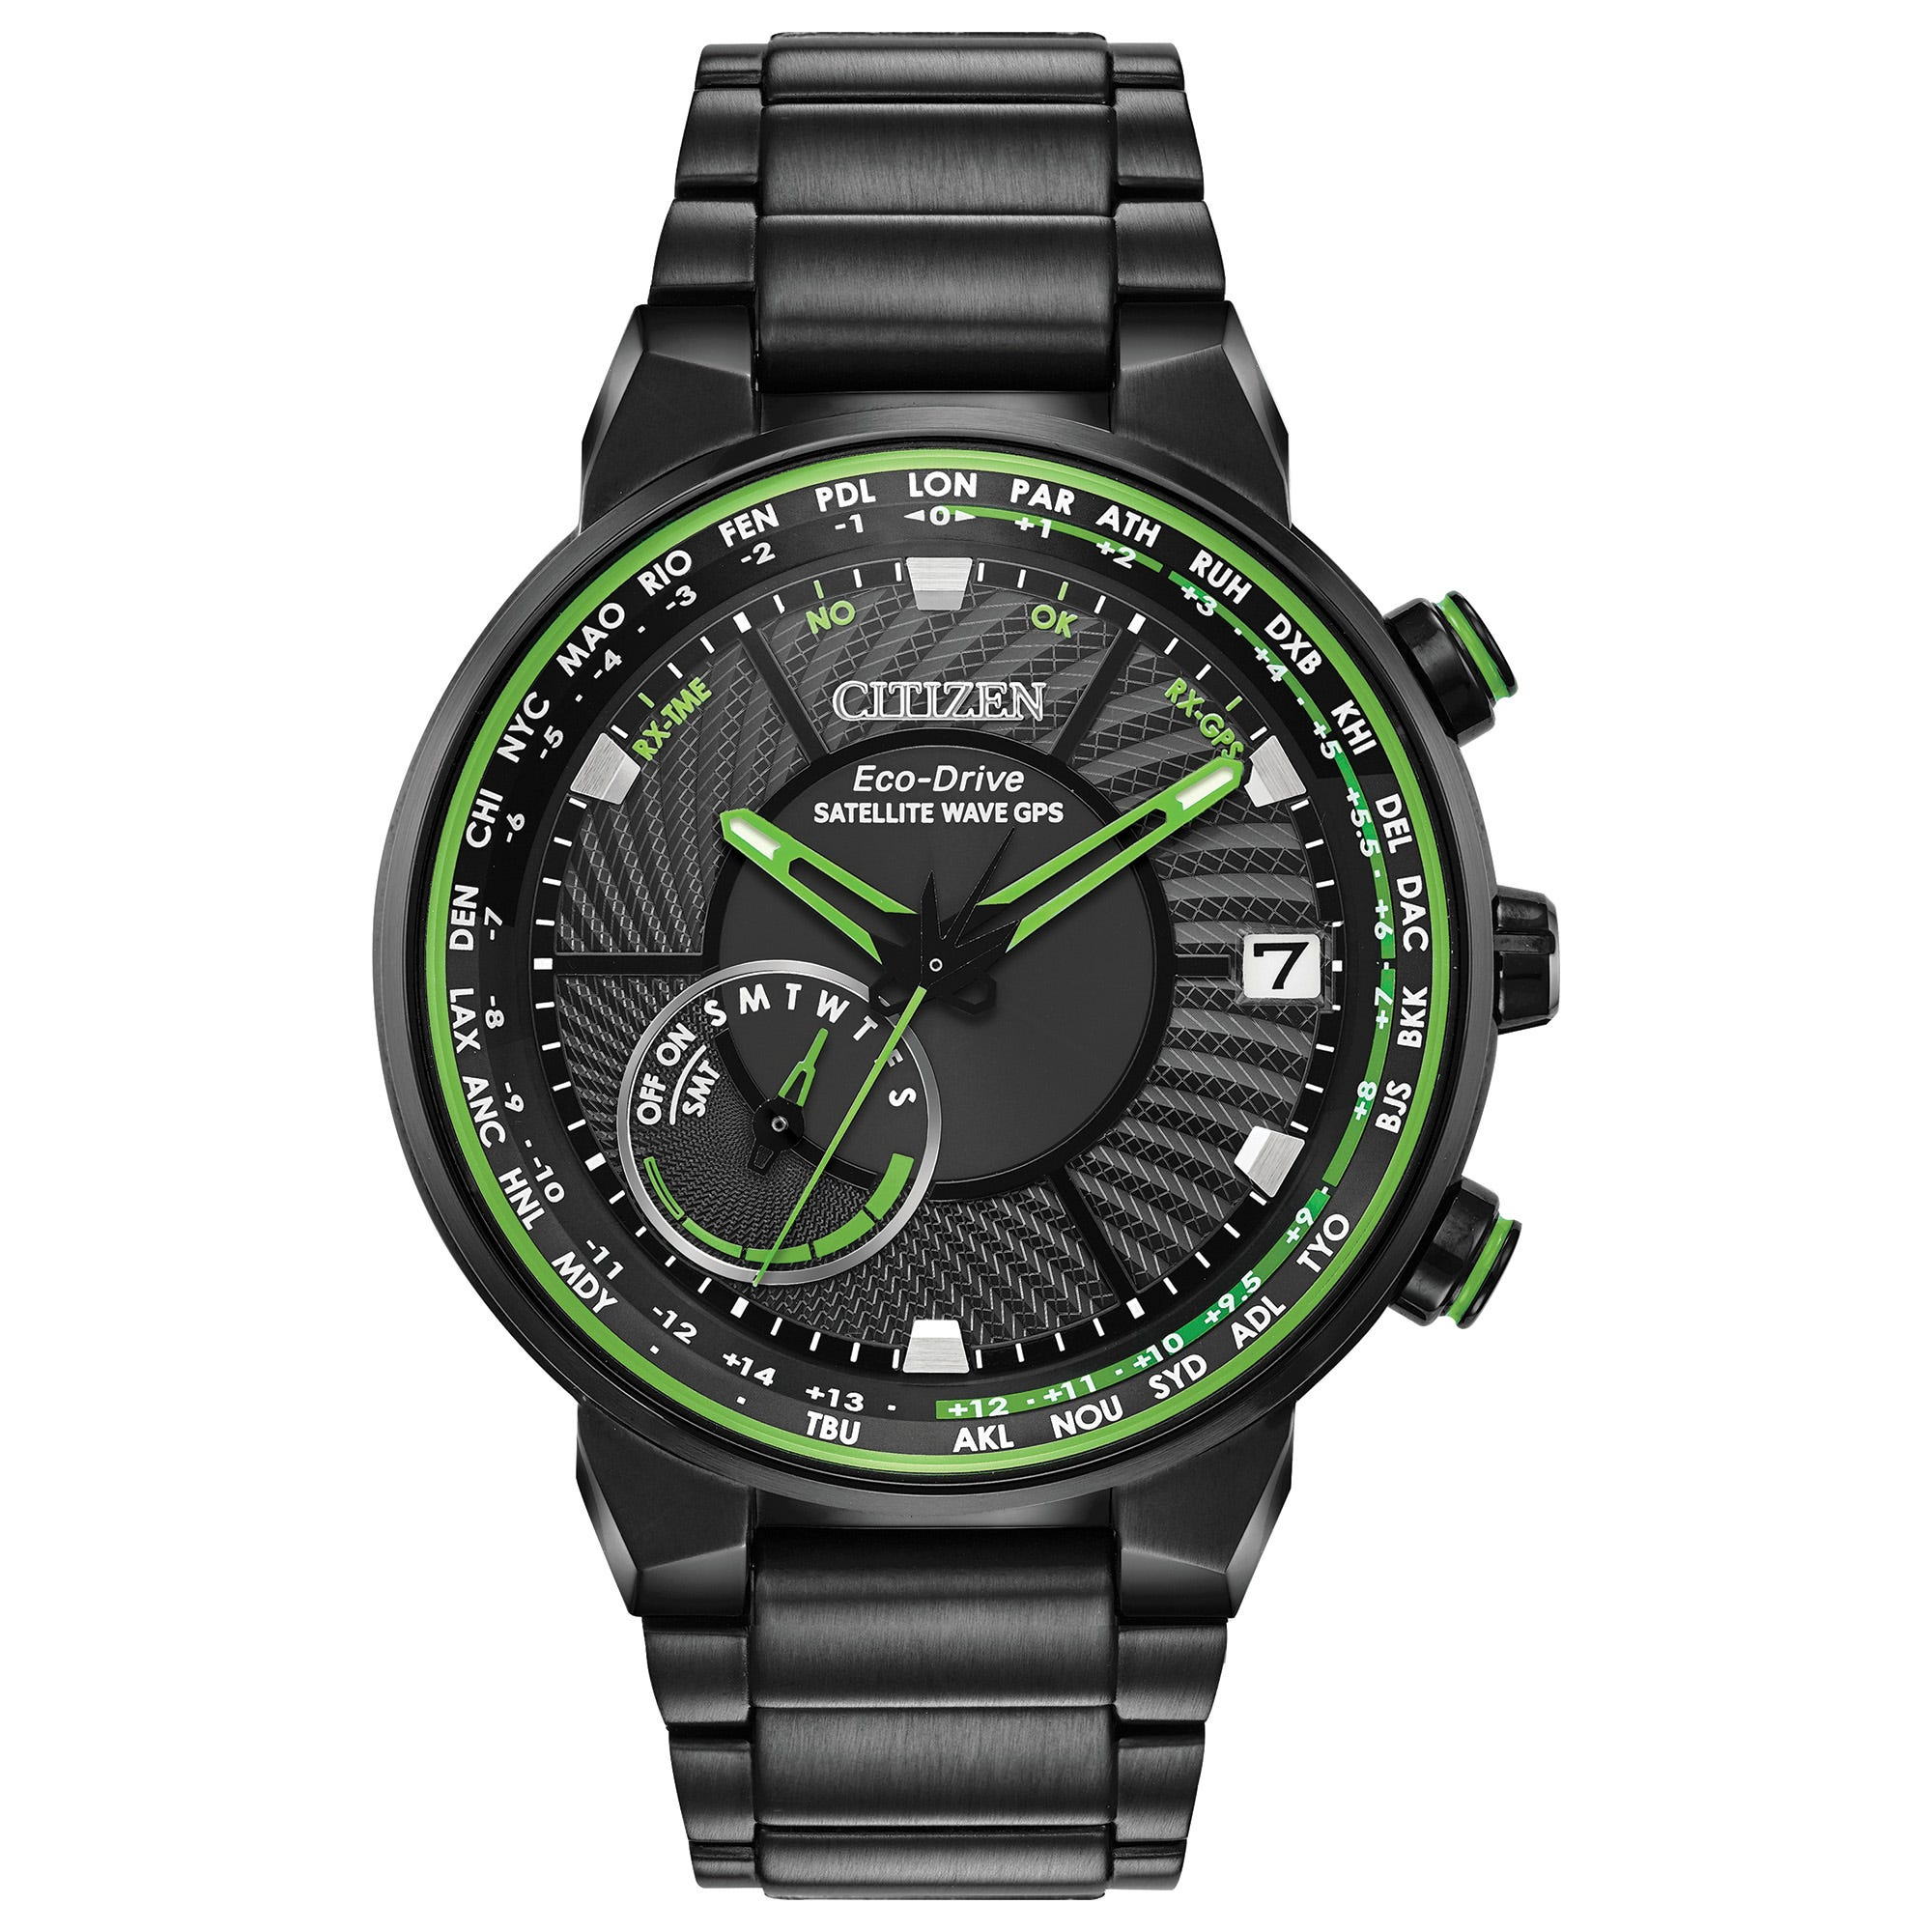 Citizen Men's Satellite Wave GPS Freedom Watch CC3035-50E